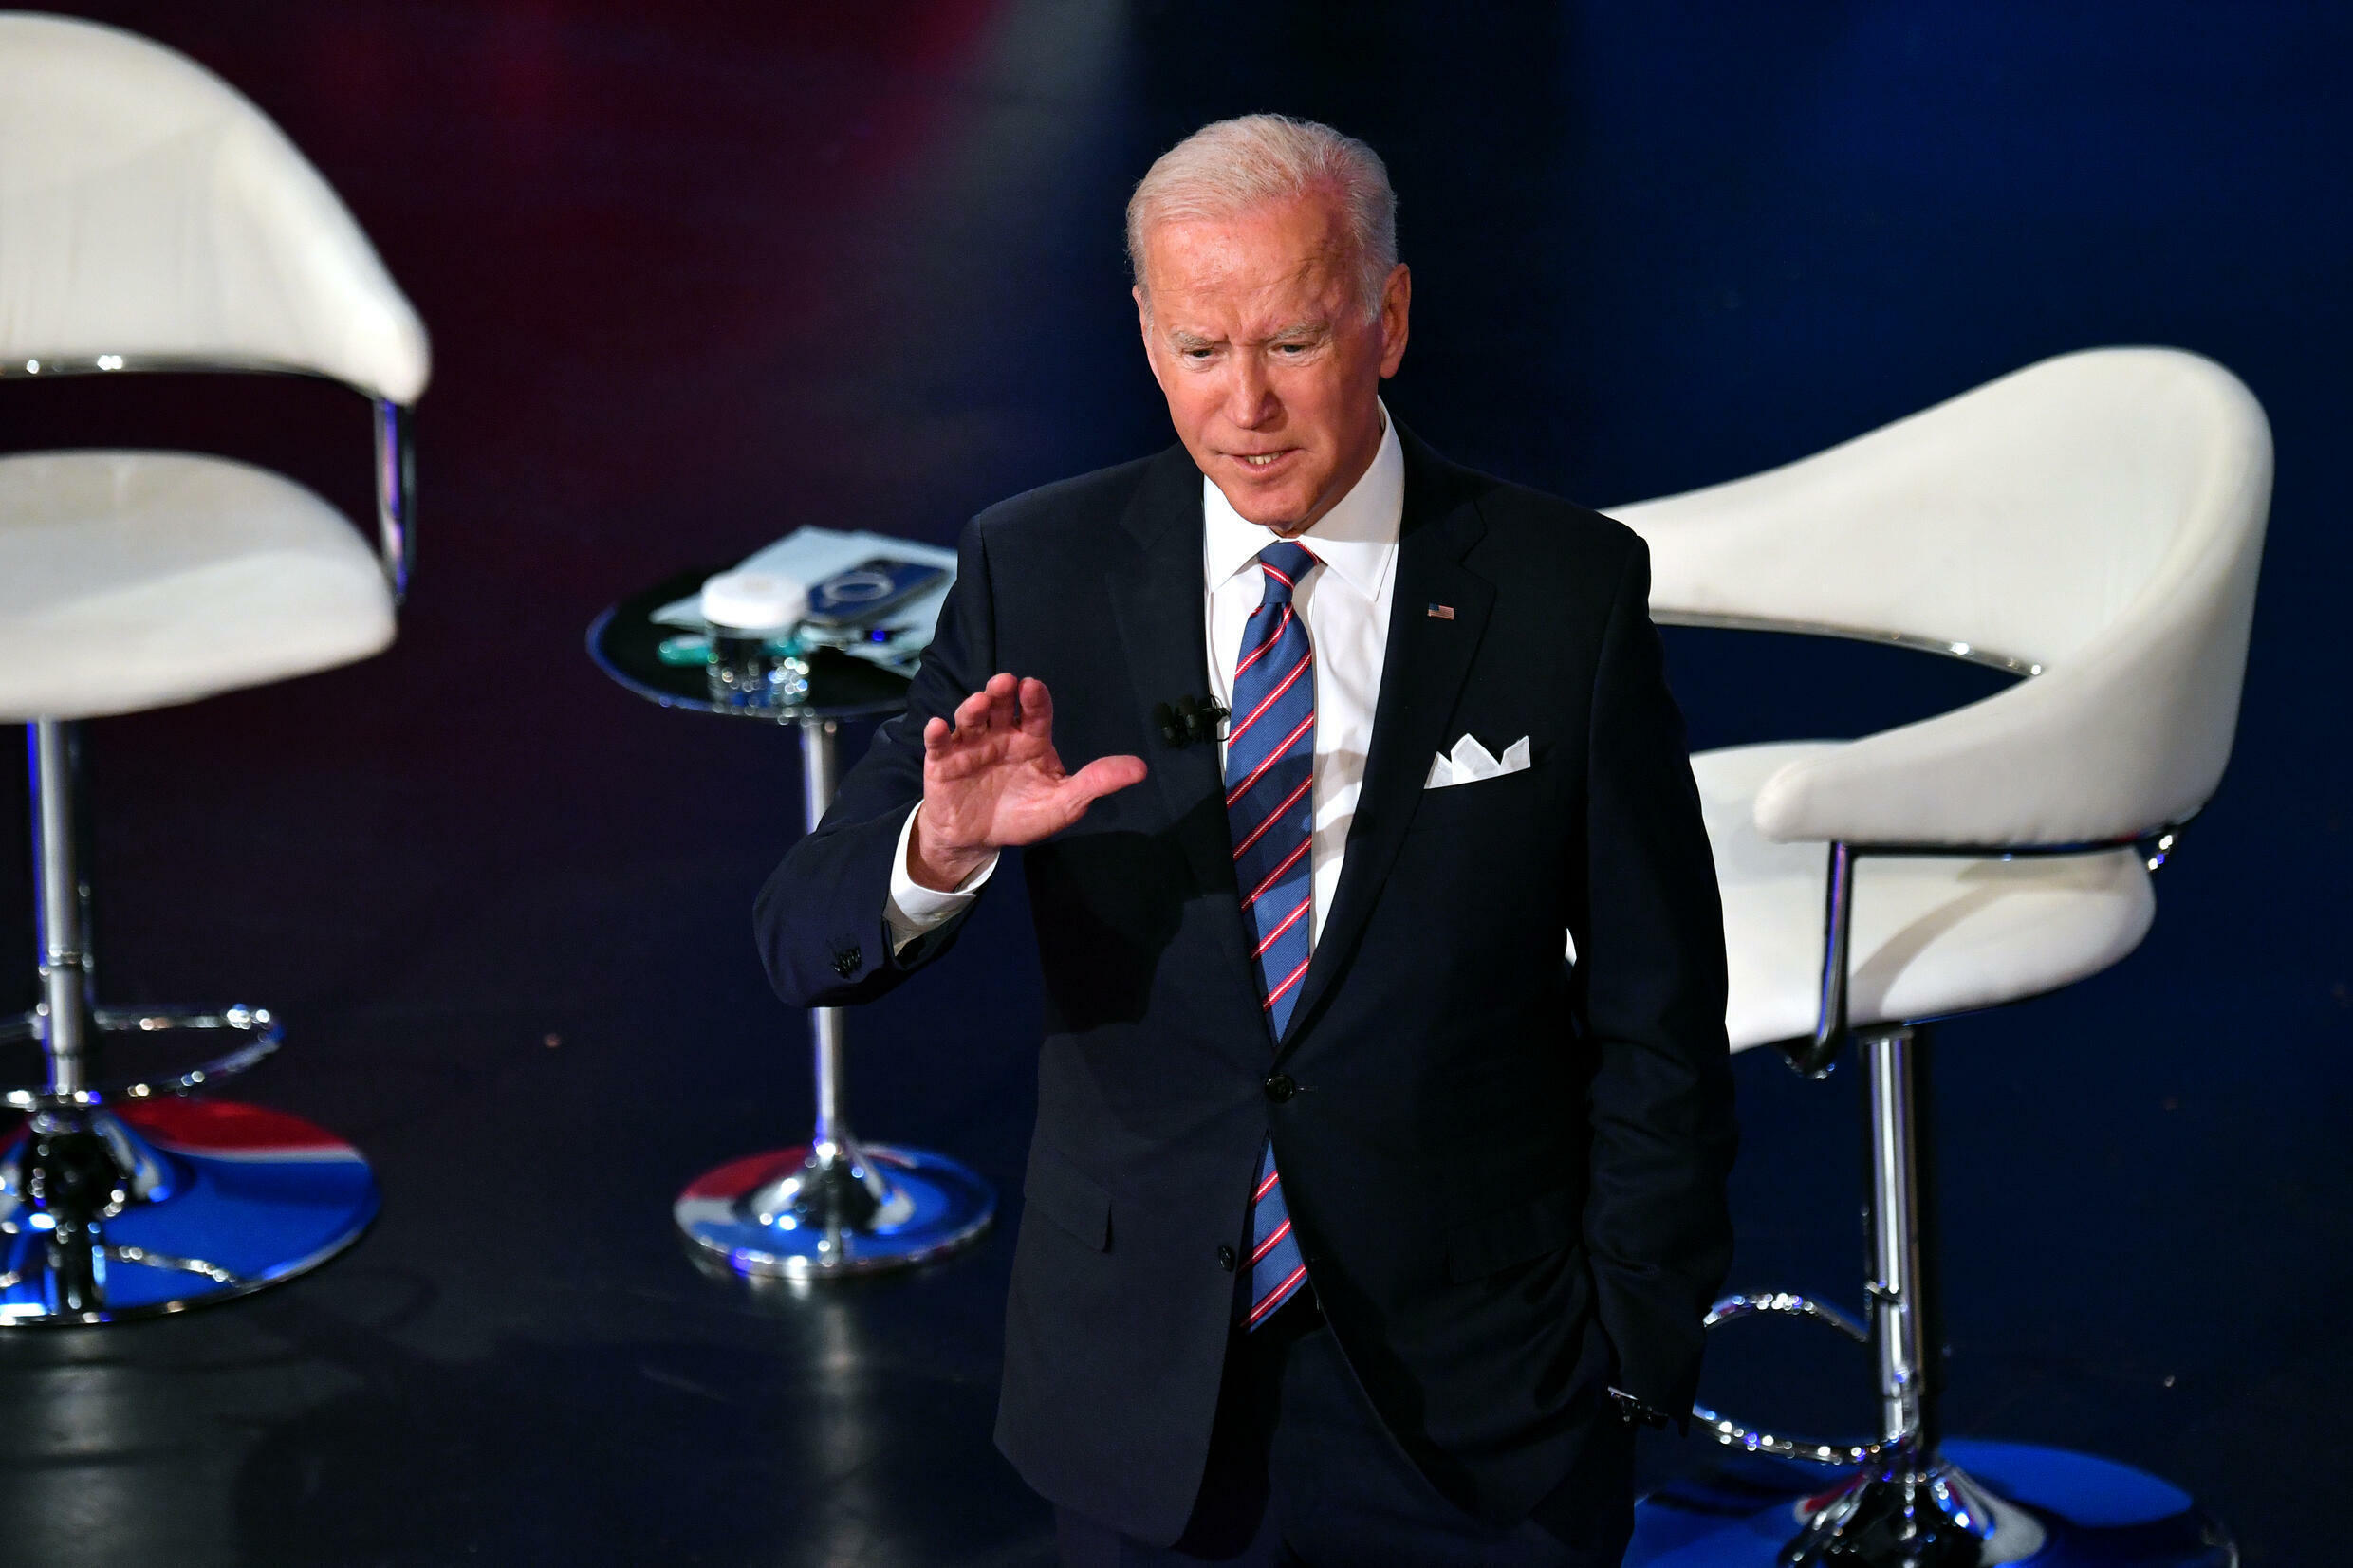 US President Joe Biden says his investment bills should pass but he appears to drop a demand for higher taxes on the richest Americans